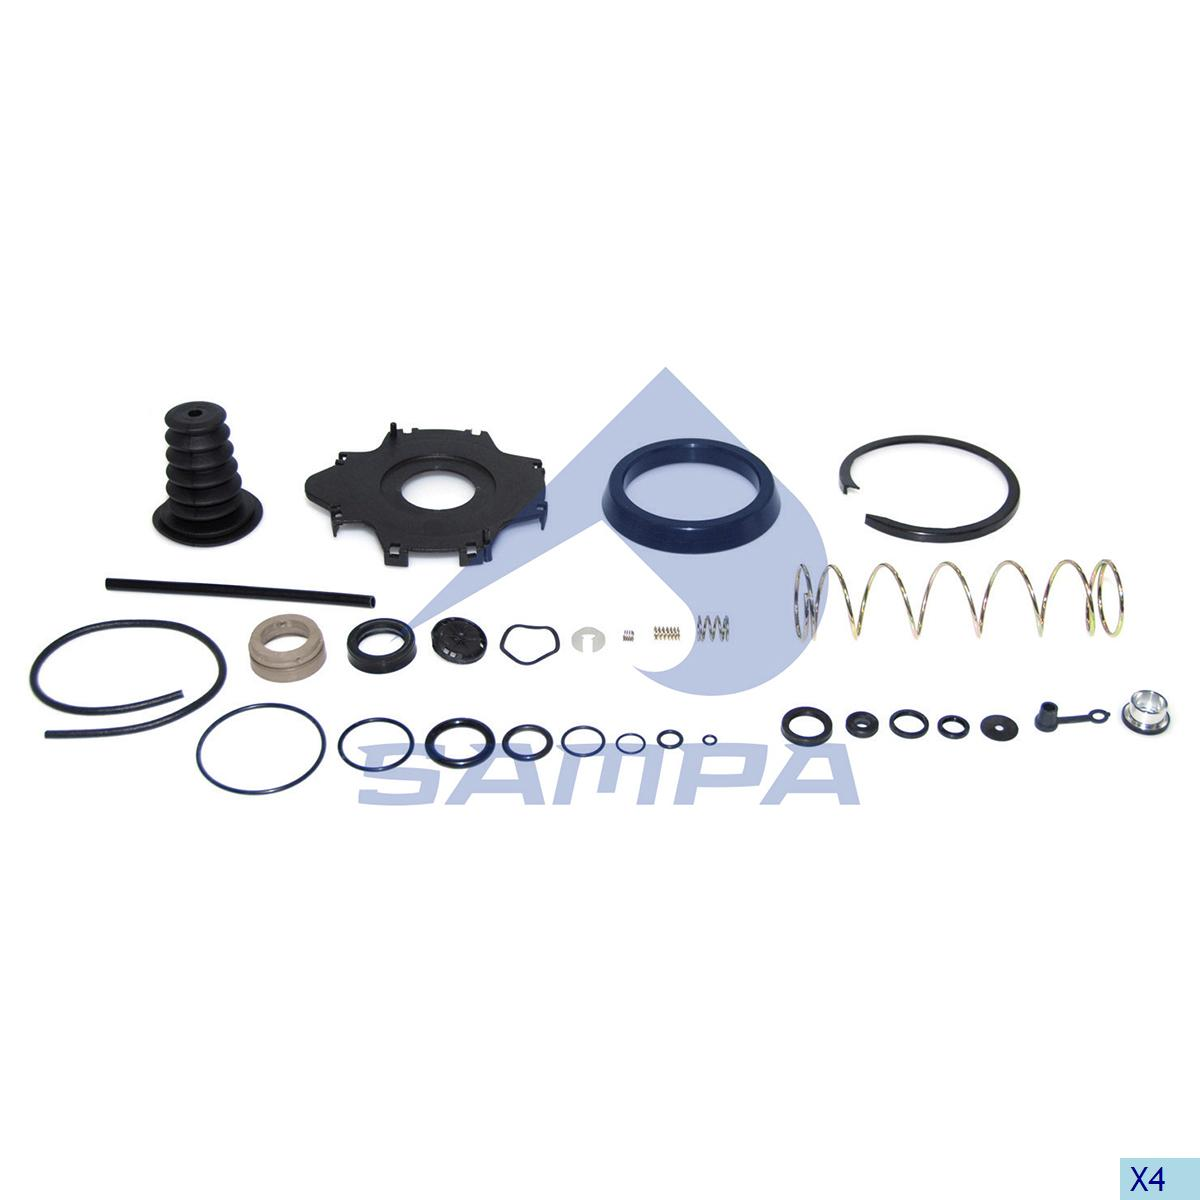 Repair Kit, Clutch Servo, Daf, Clutch